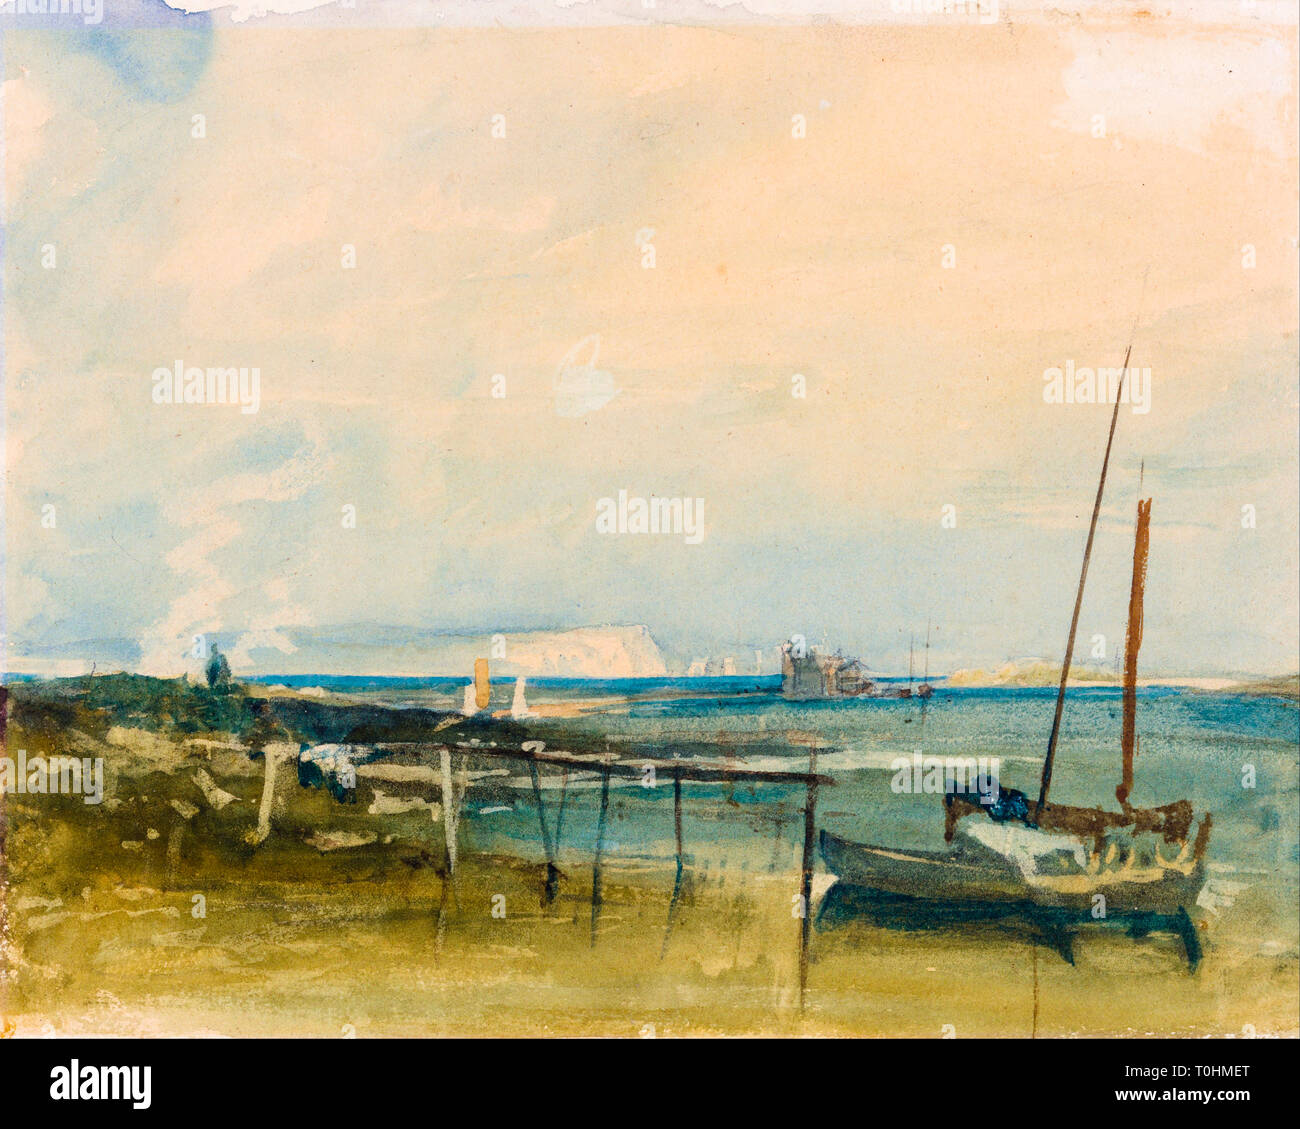 JMW Turner, Coast Scene with White Cliffs and Boats on Shore, watercolour painting - Stock Image